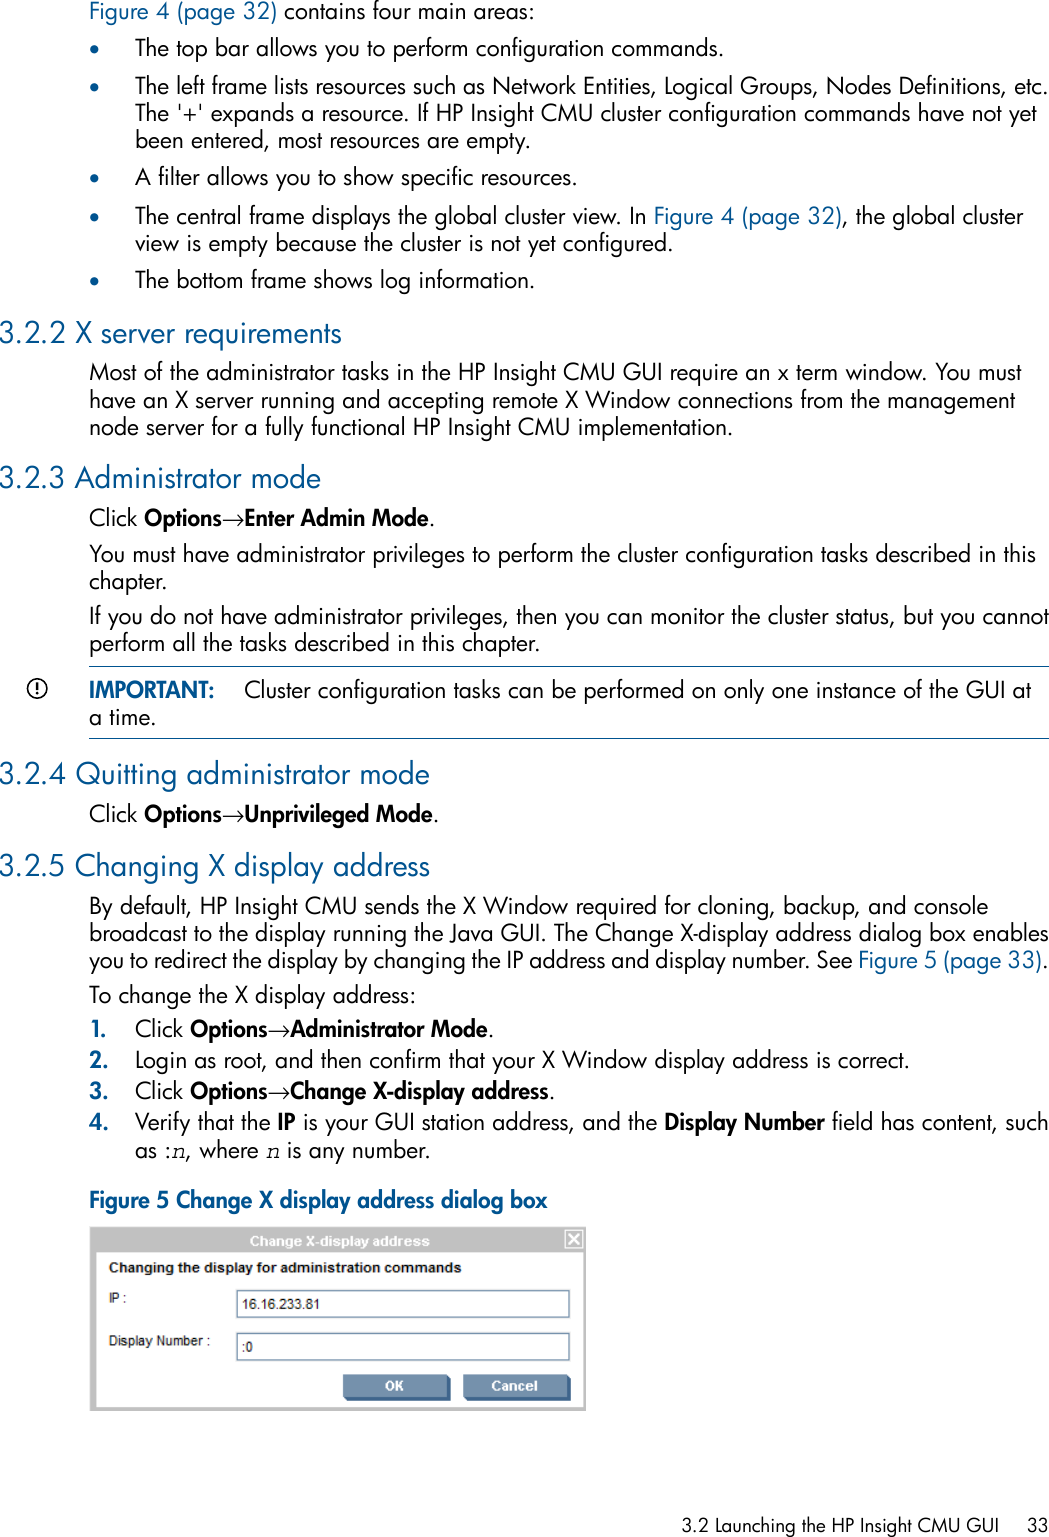 Hp Insight Cluster Management Utility Users Manual V7 1